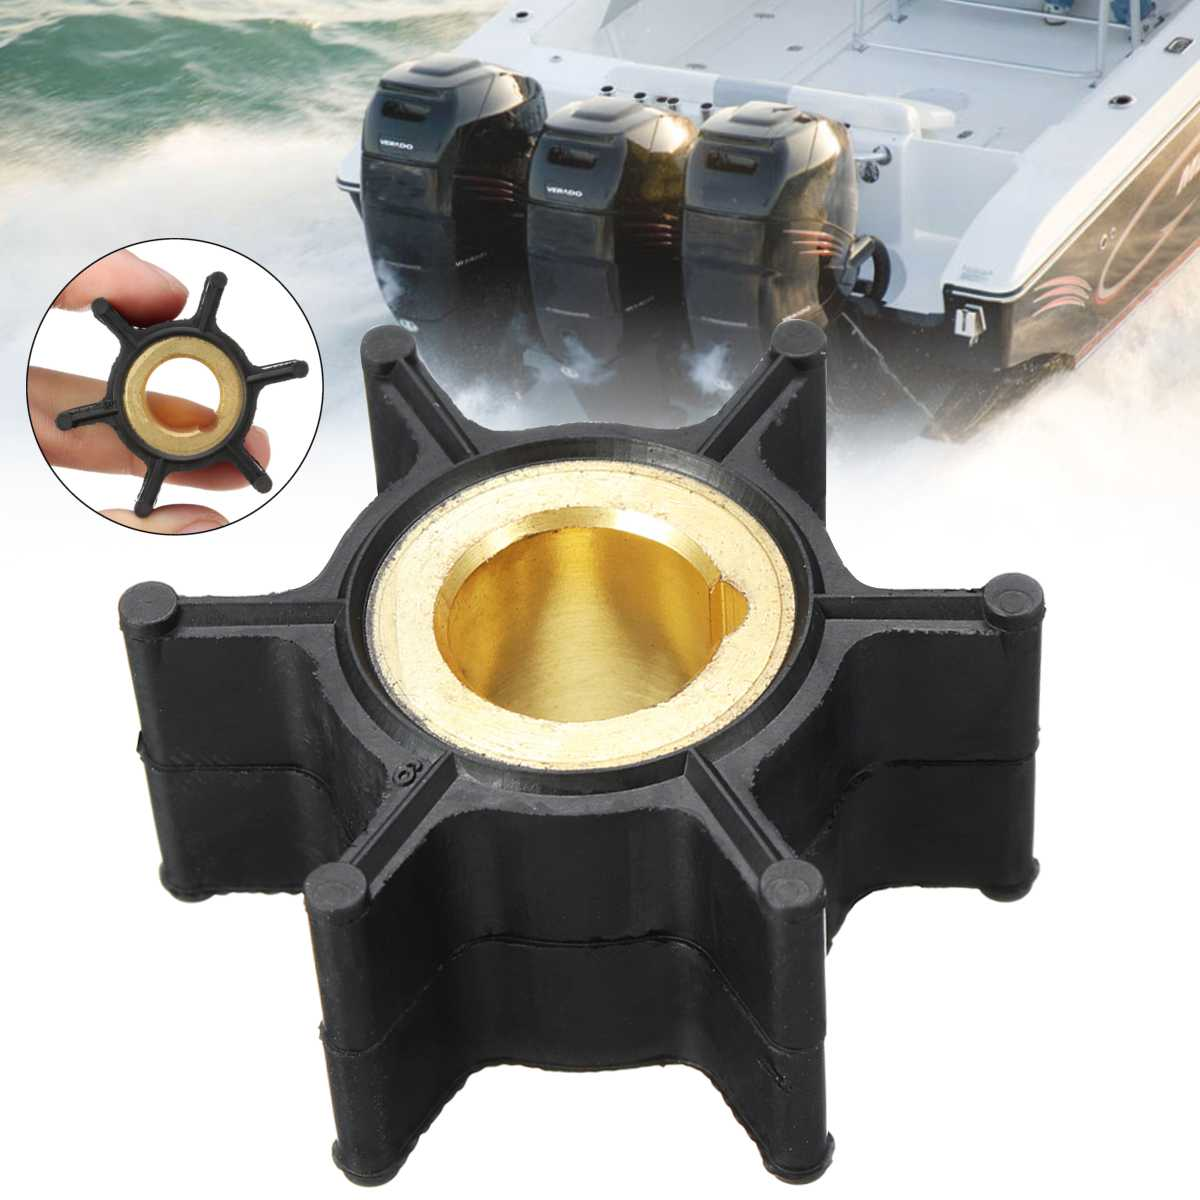 389576 436137 Water Pump Impeller For Evinrude Johnson 4HP-8HP Outboard Motor 6 Blades Black Rubber Diameter 38mm Accessories